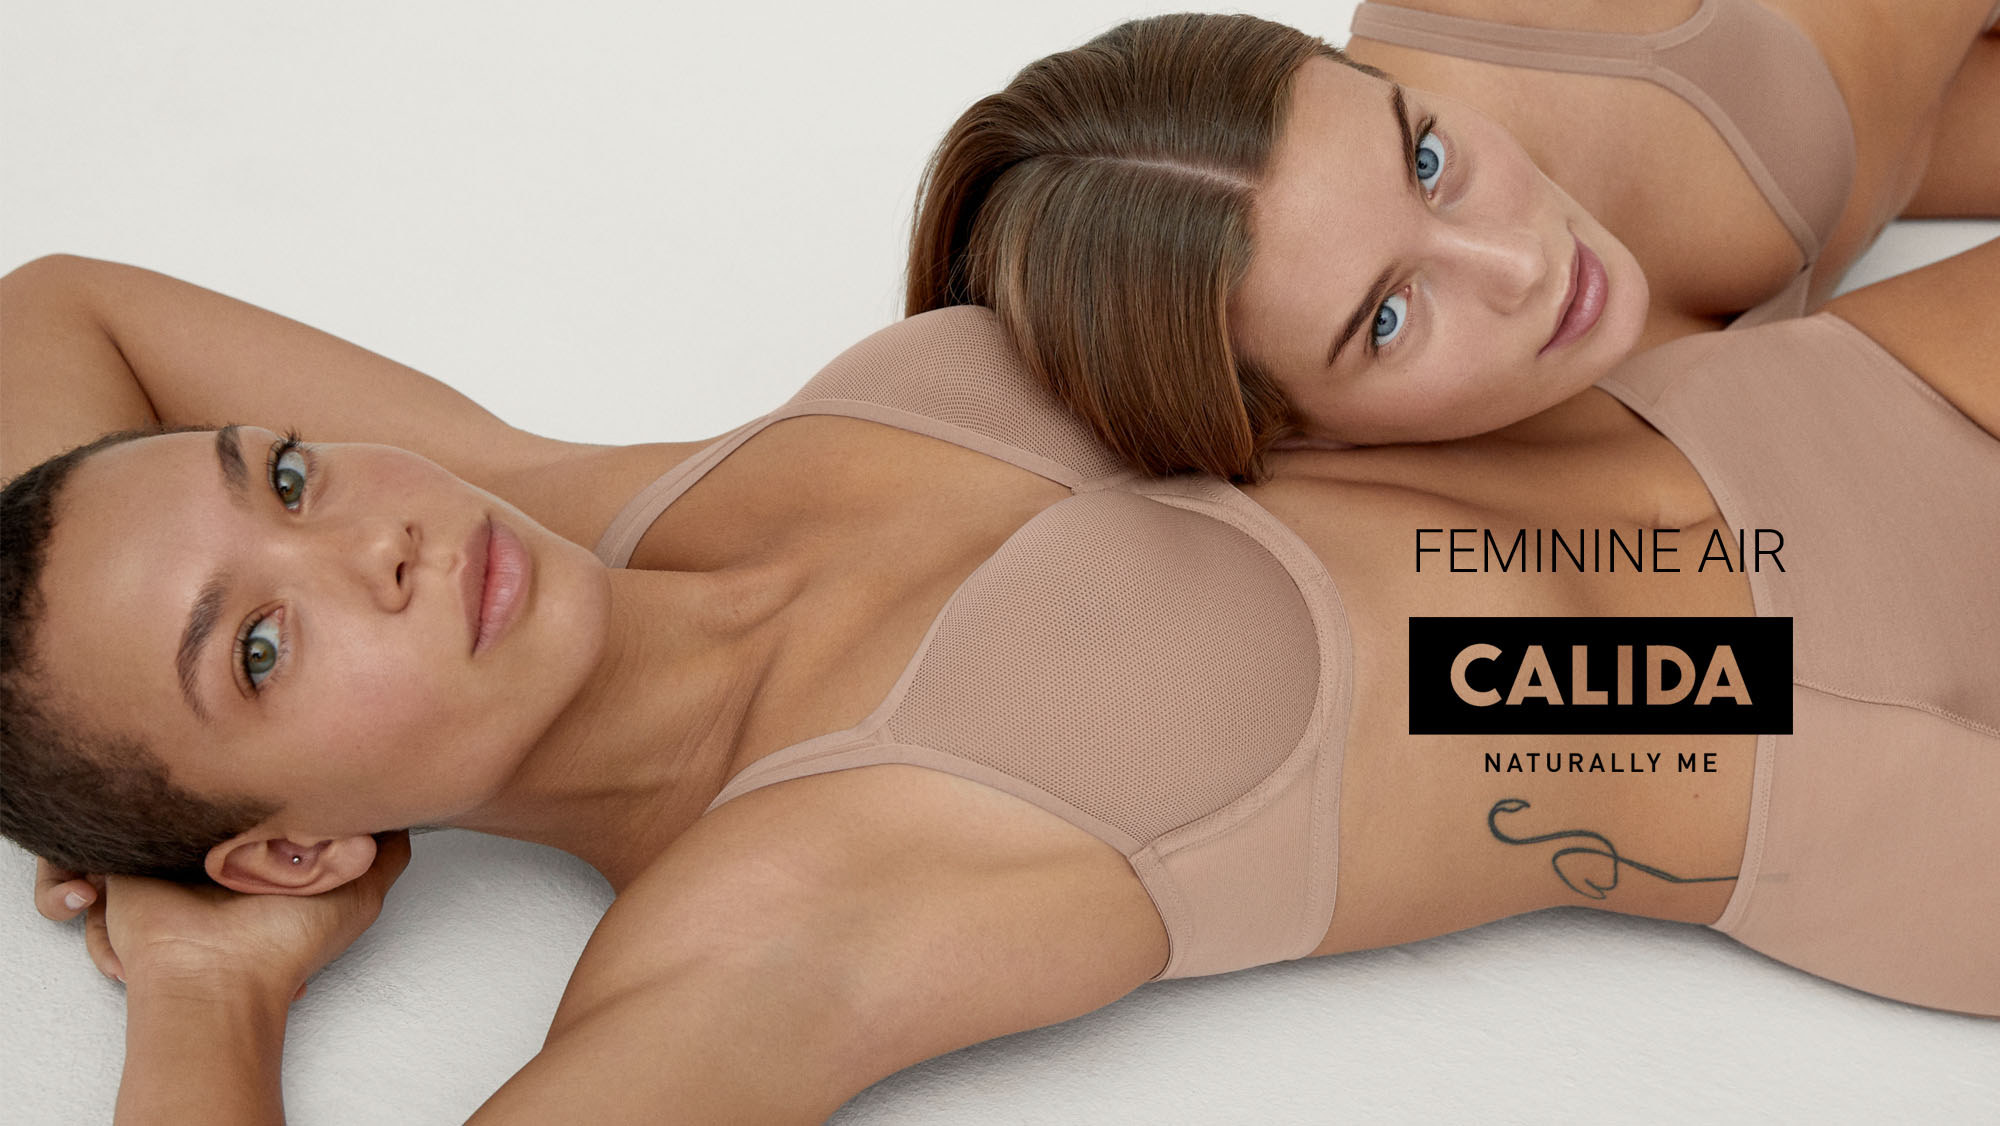 Calida Feminine Air